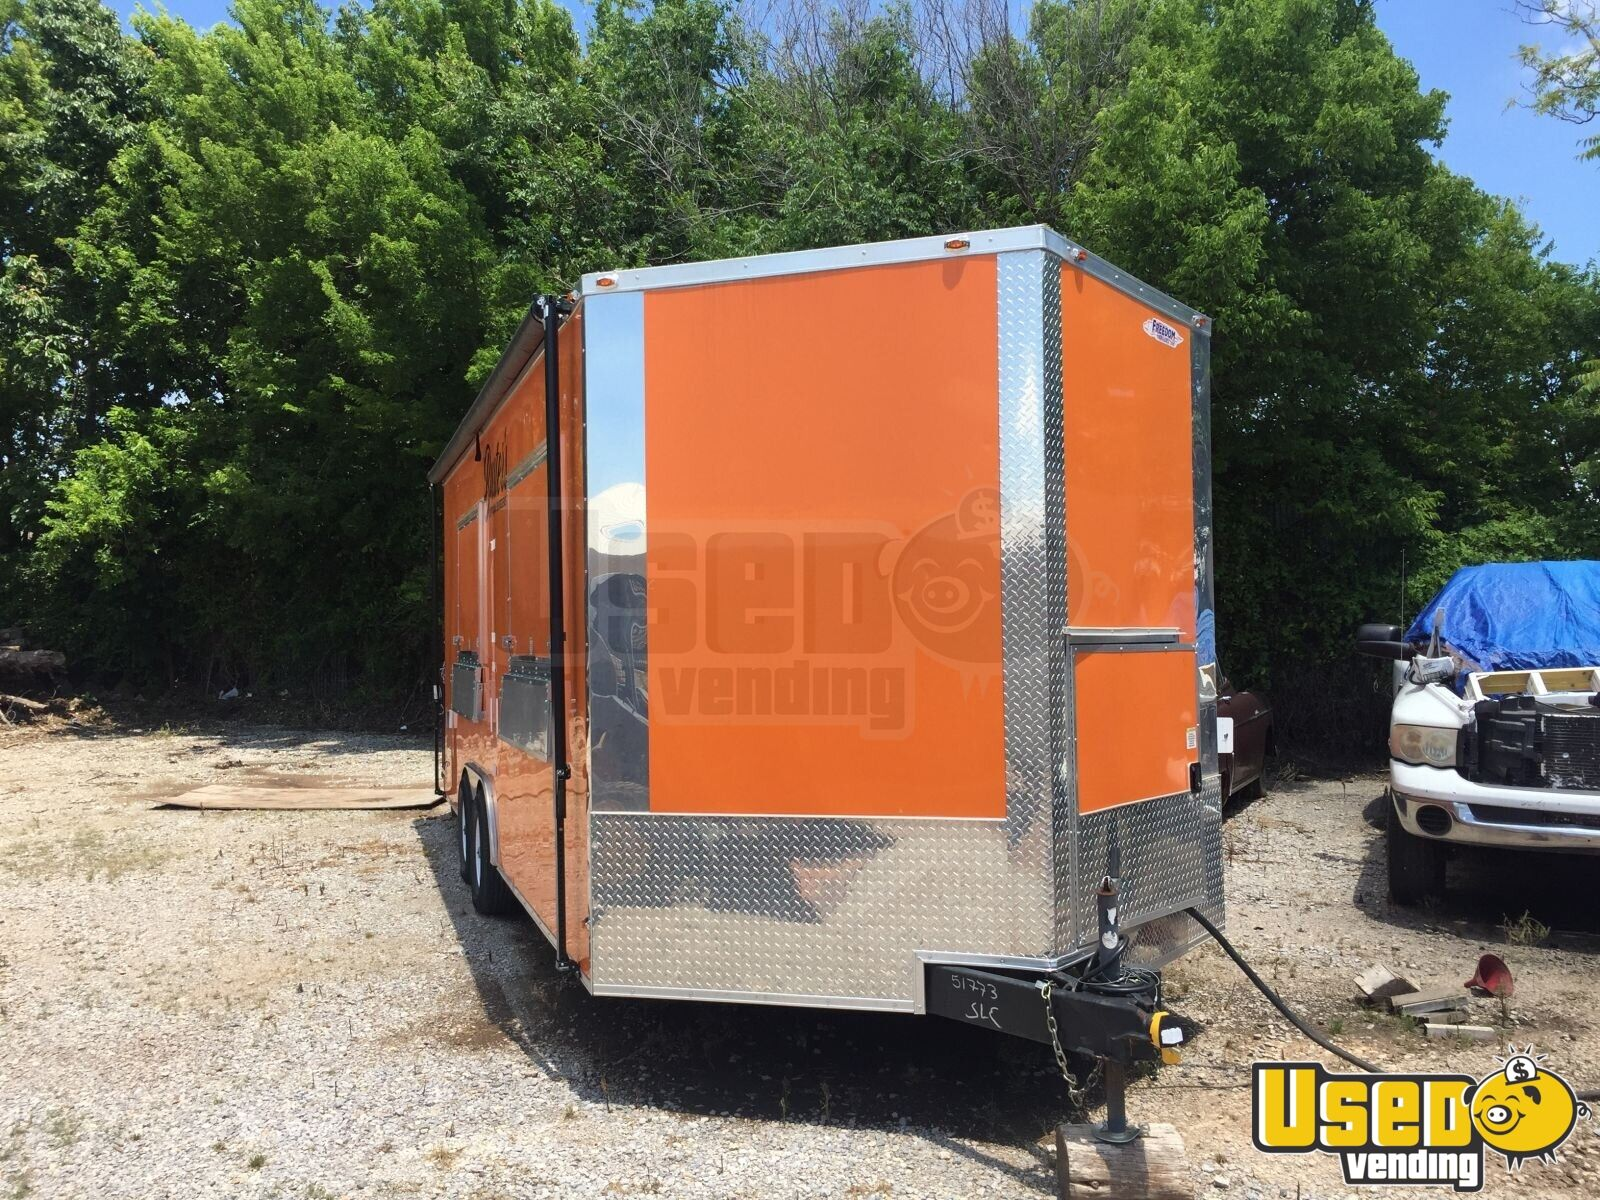 2017 Food Concession Trailer Kitchen Food Trailer Stainless Steel Wall Covers Oklahoma for Sale - 5